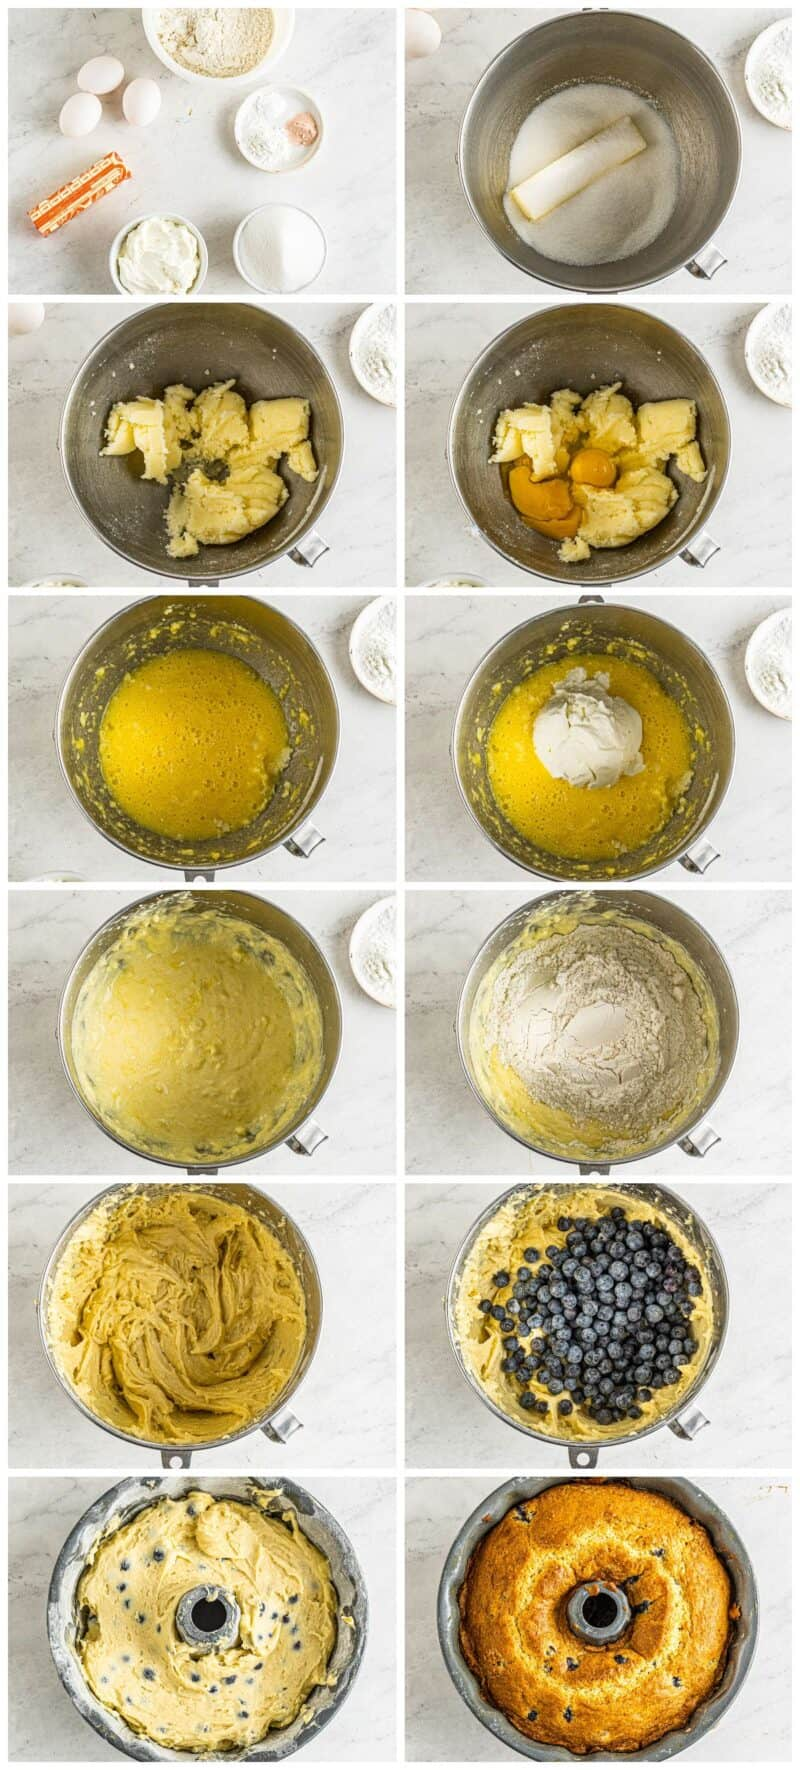 step by step photos for how to make blueberry bundt cake